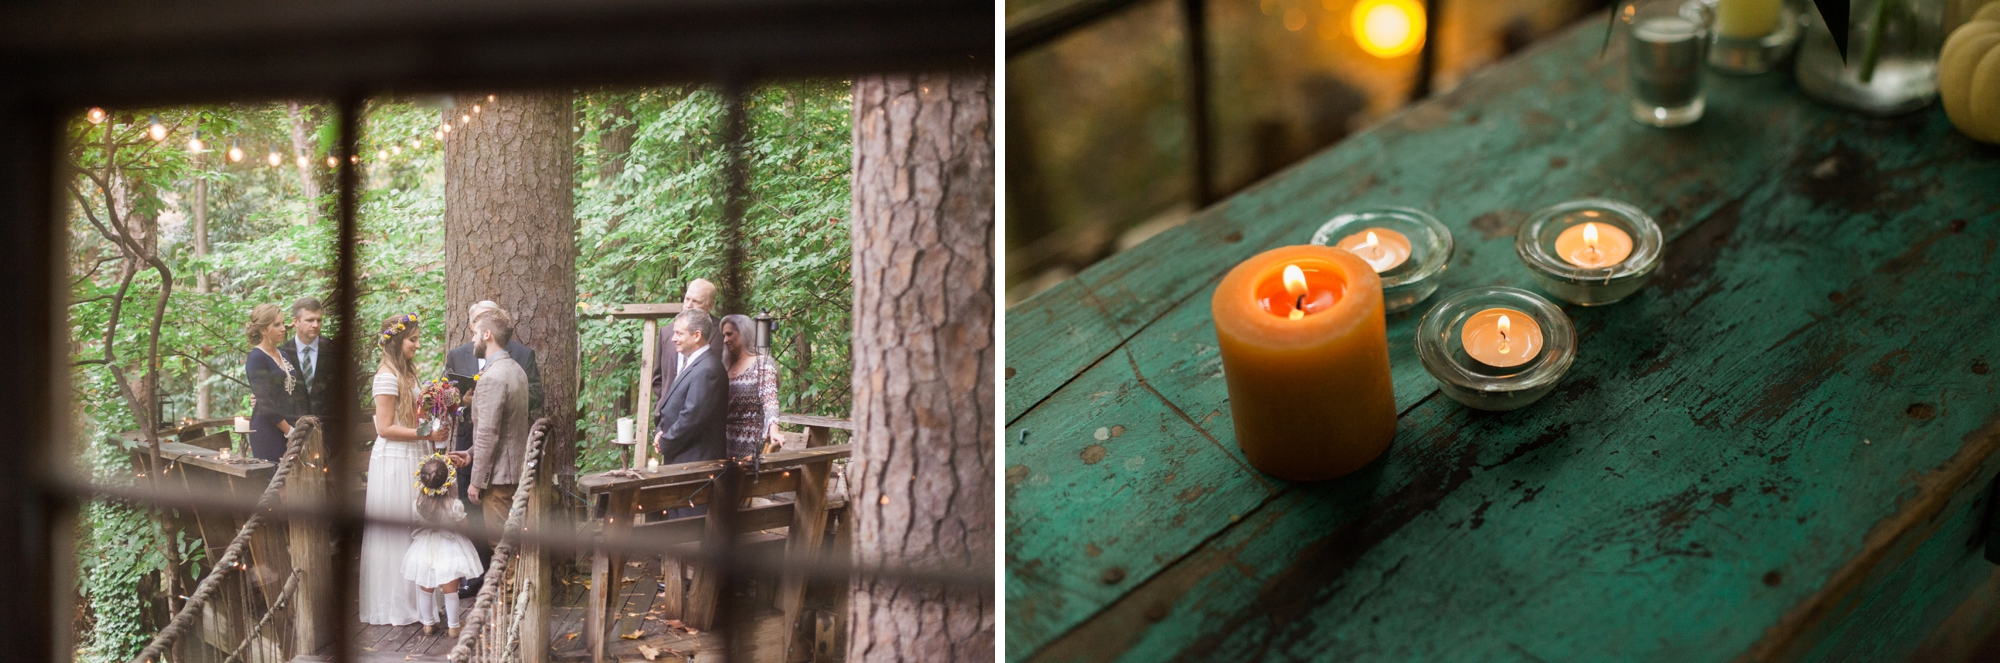 treehouse wedding - white rabbit studios_0100